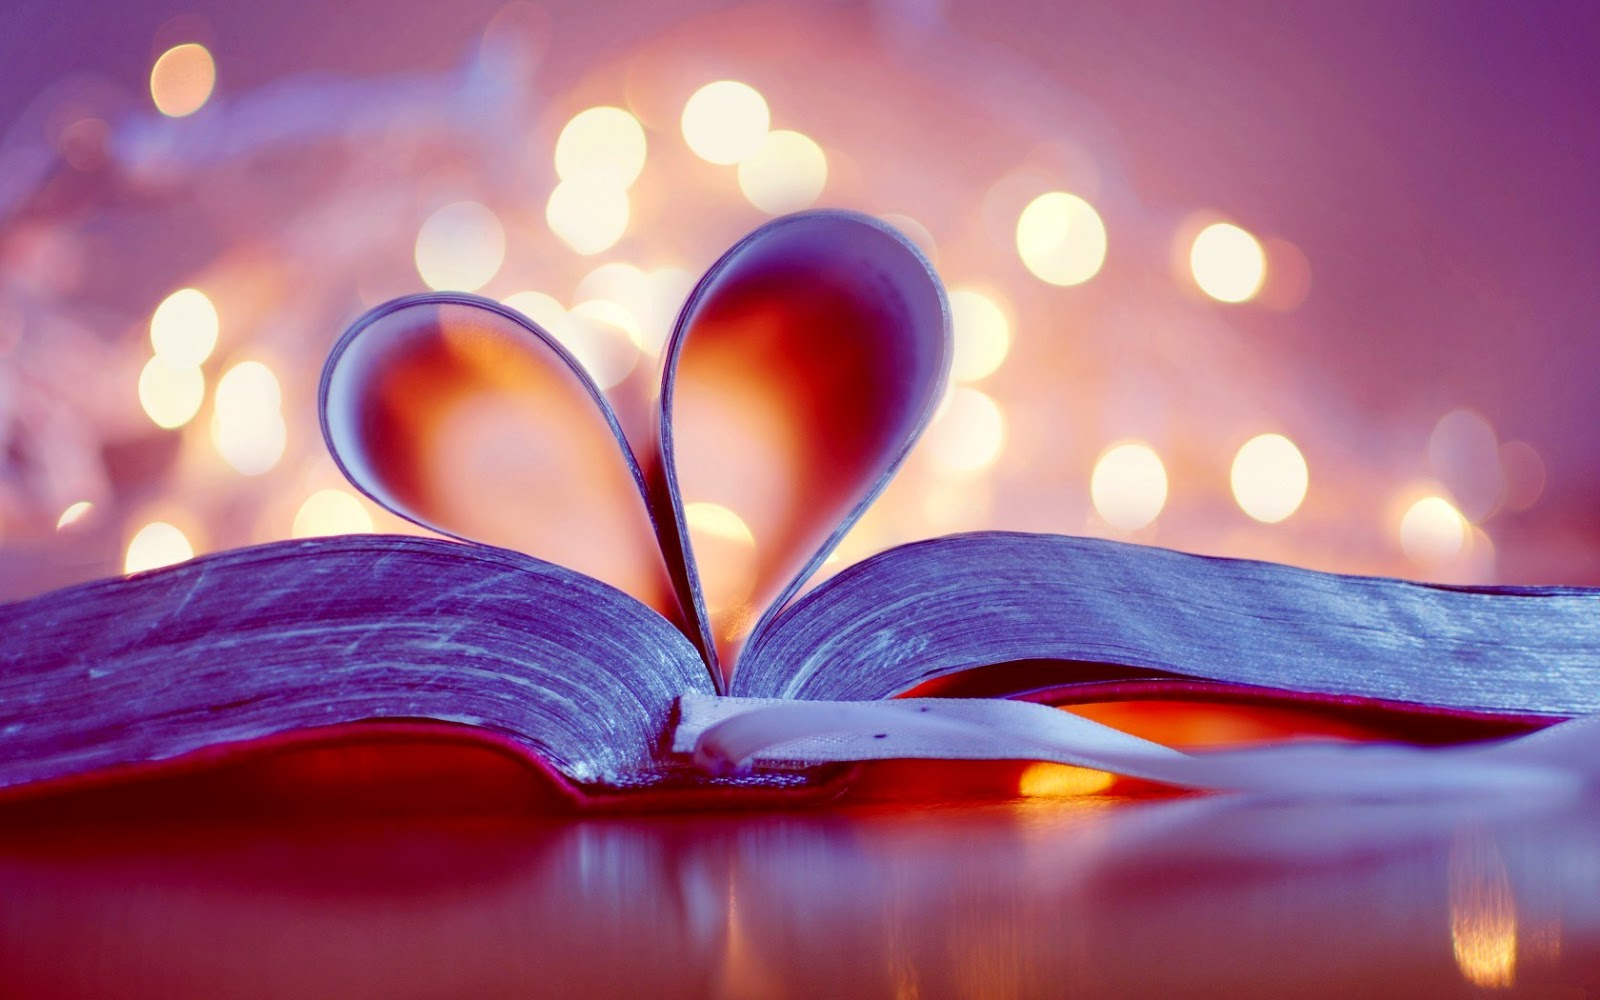 book of love, love books, 4truelovers images, 10 YA Books That Will Make You Fall In Love Over Again , love book, book of love animation